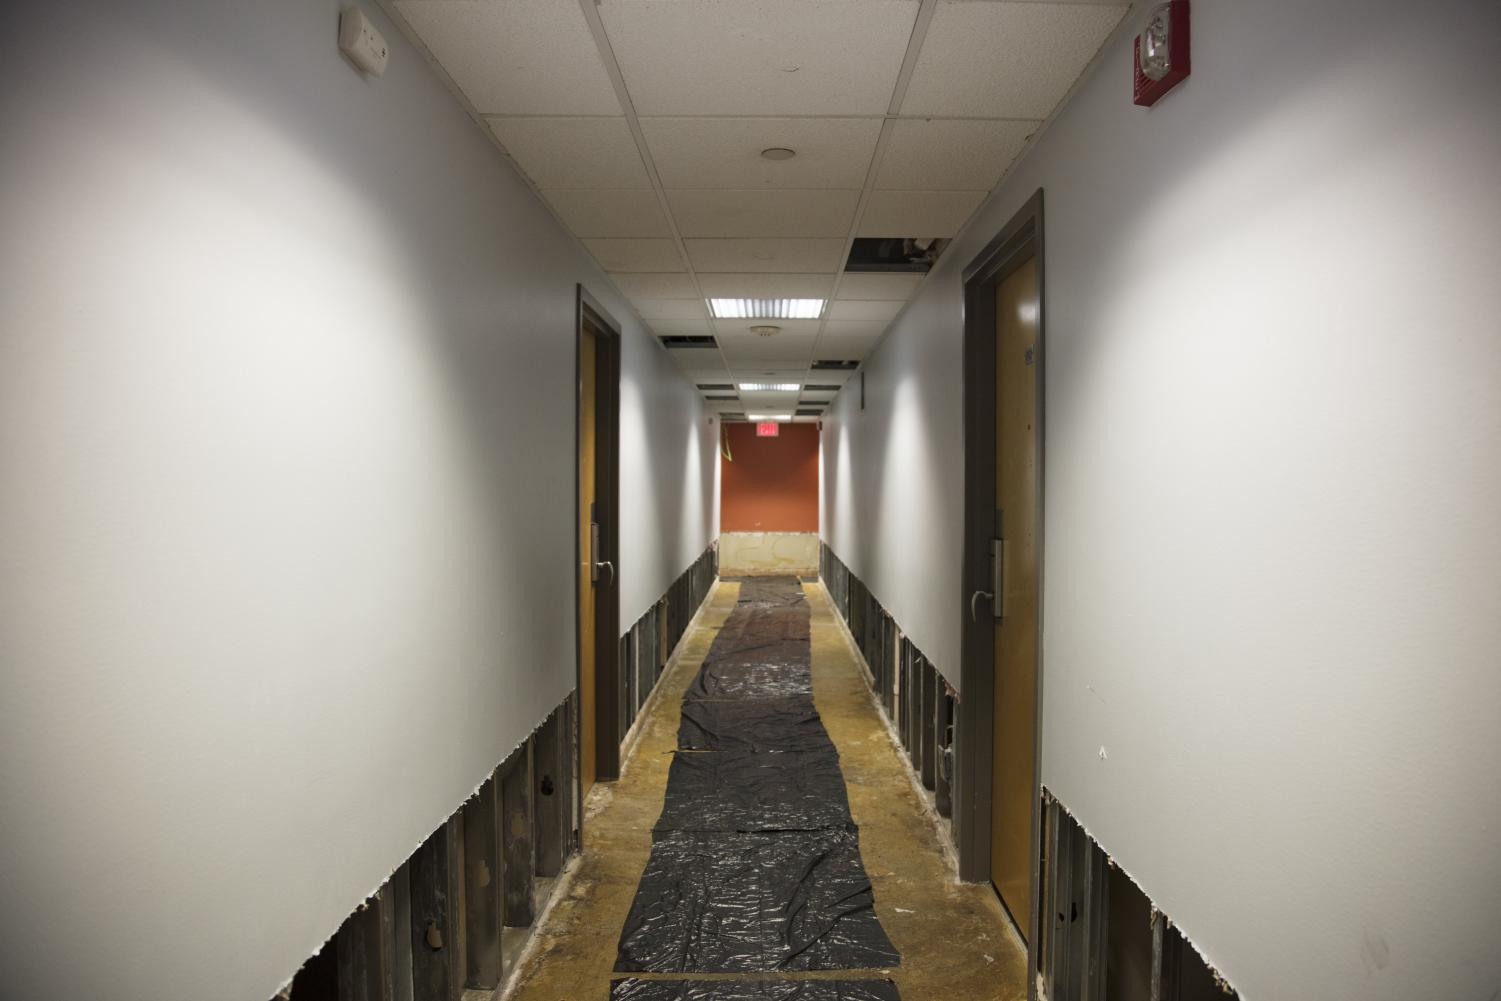 Water damage on the second floor of Illini Tower on Oct. 11. The first to fourth floors of the residence hall were flooded on Sept. 25 by a sprinkler in one of the apartments.